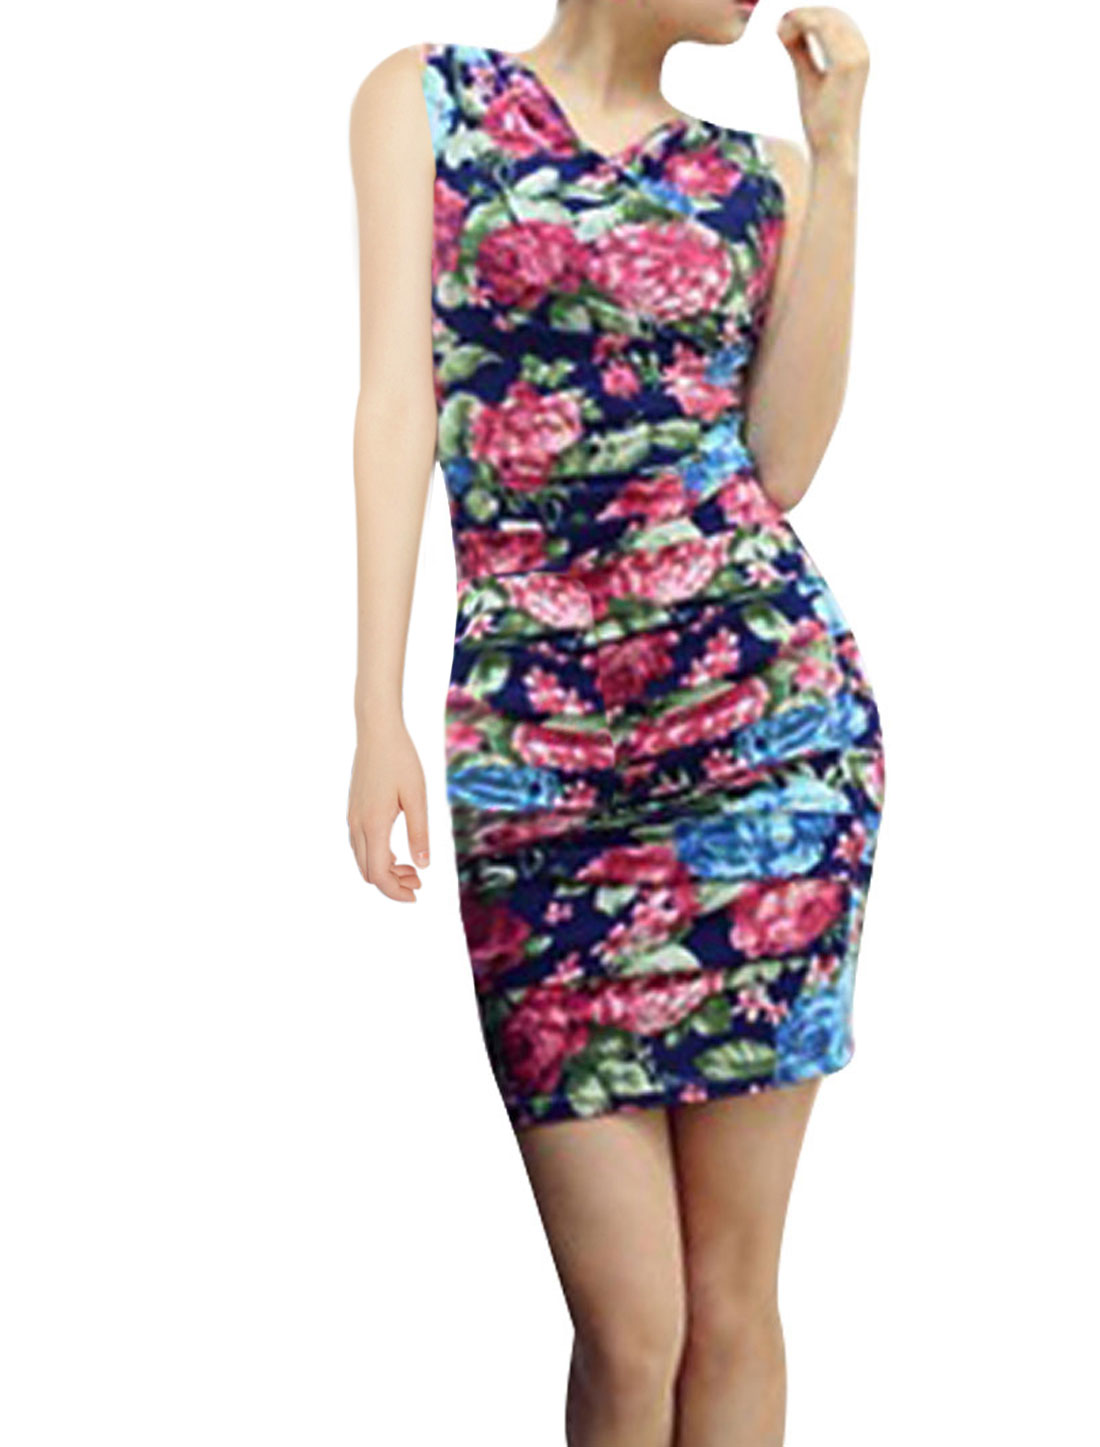 Lady Sleeveless Zipper Front Floral Prints Multicolor Mini Dress XS